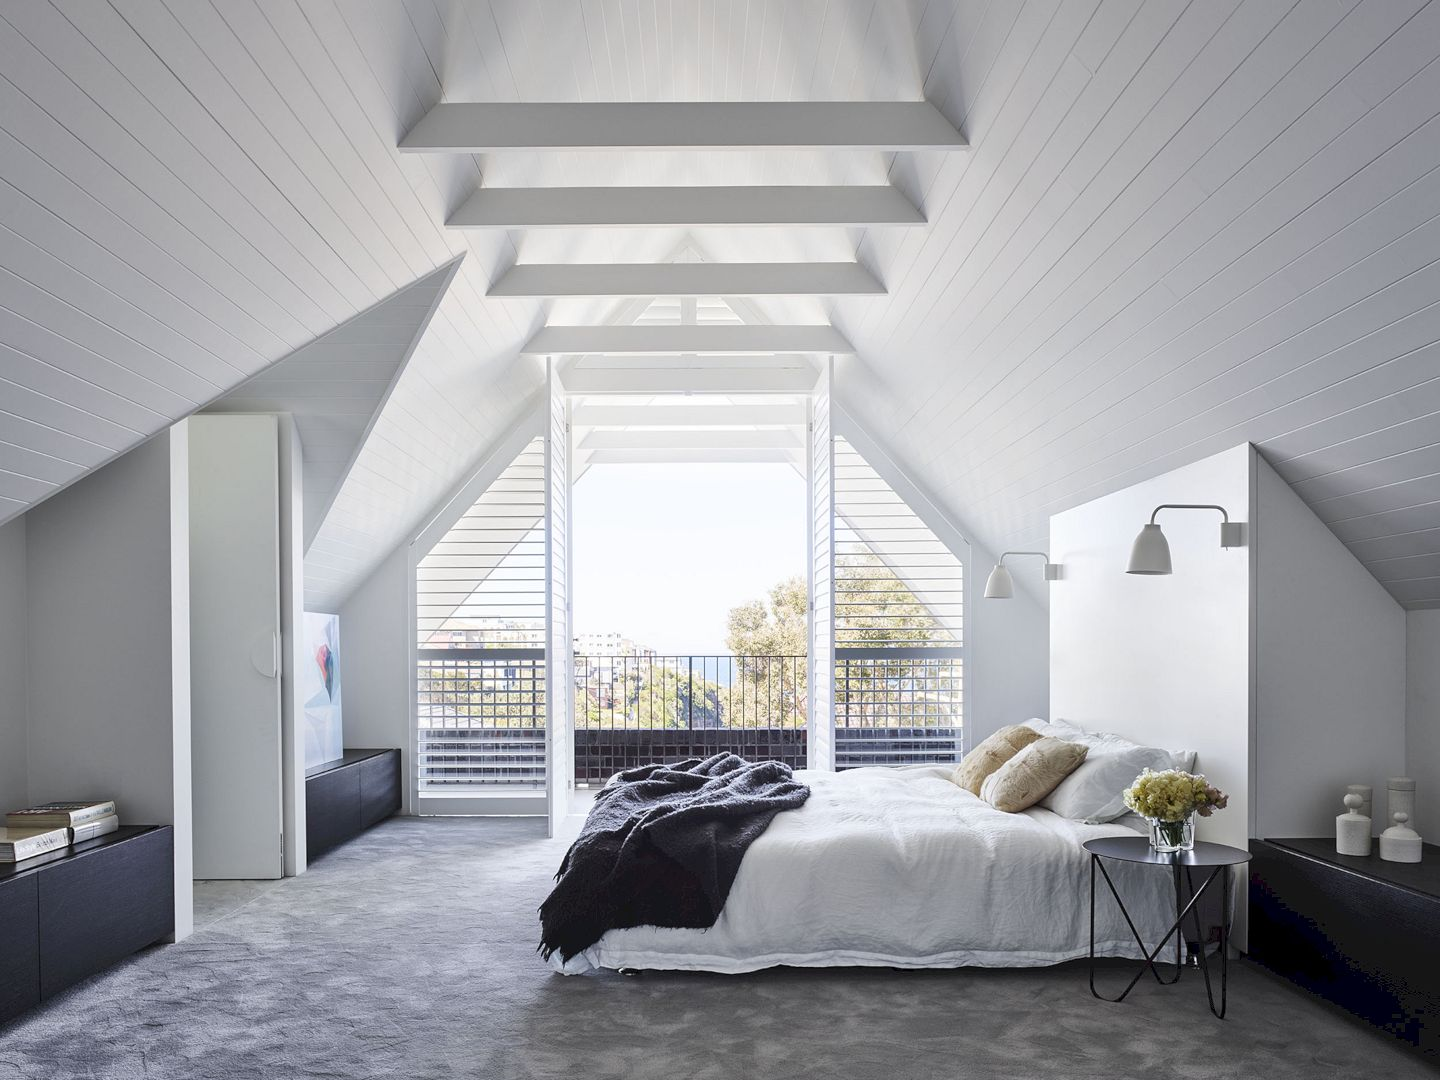 Attic House By Madeleine Blanchfield Architects 6